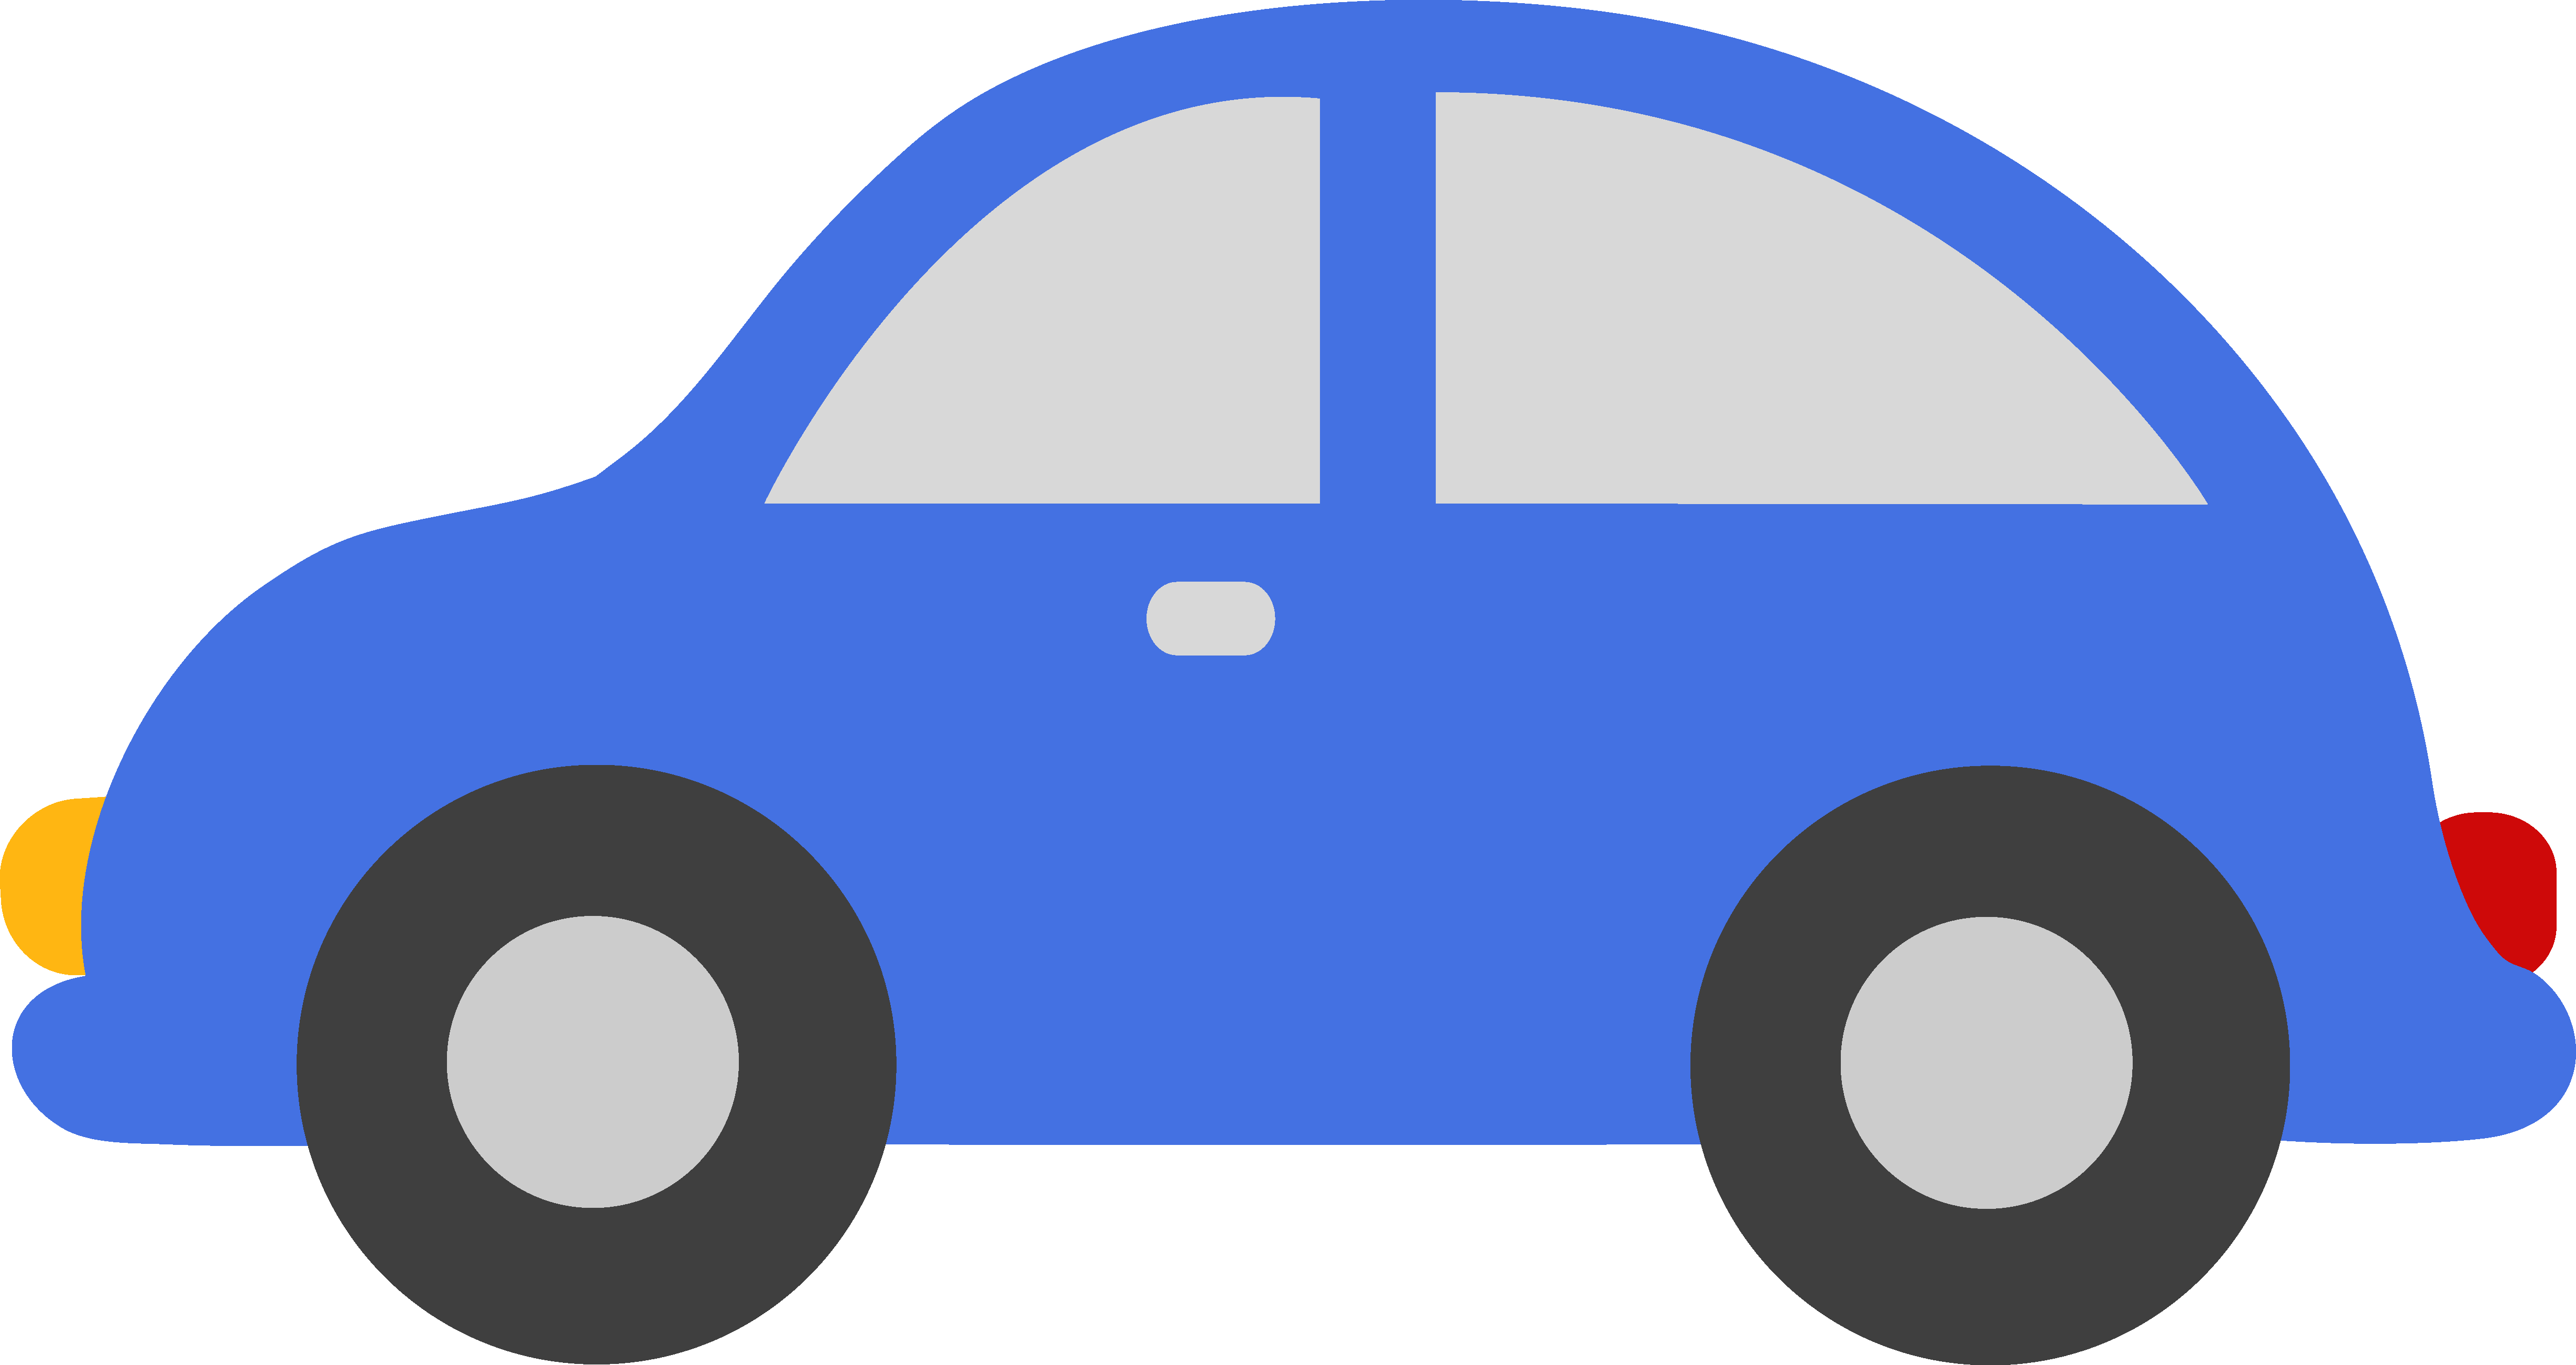 blue toy car clipart clipart panda free clipart images rh clipartpanda com red toy car clipart toy car clipart black and white